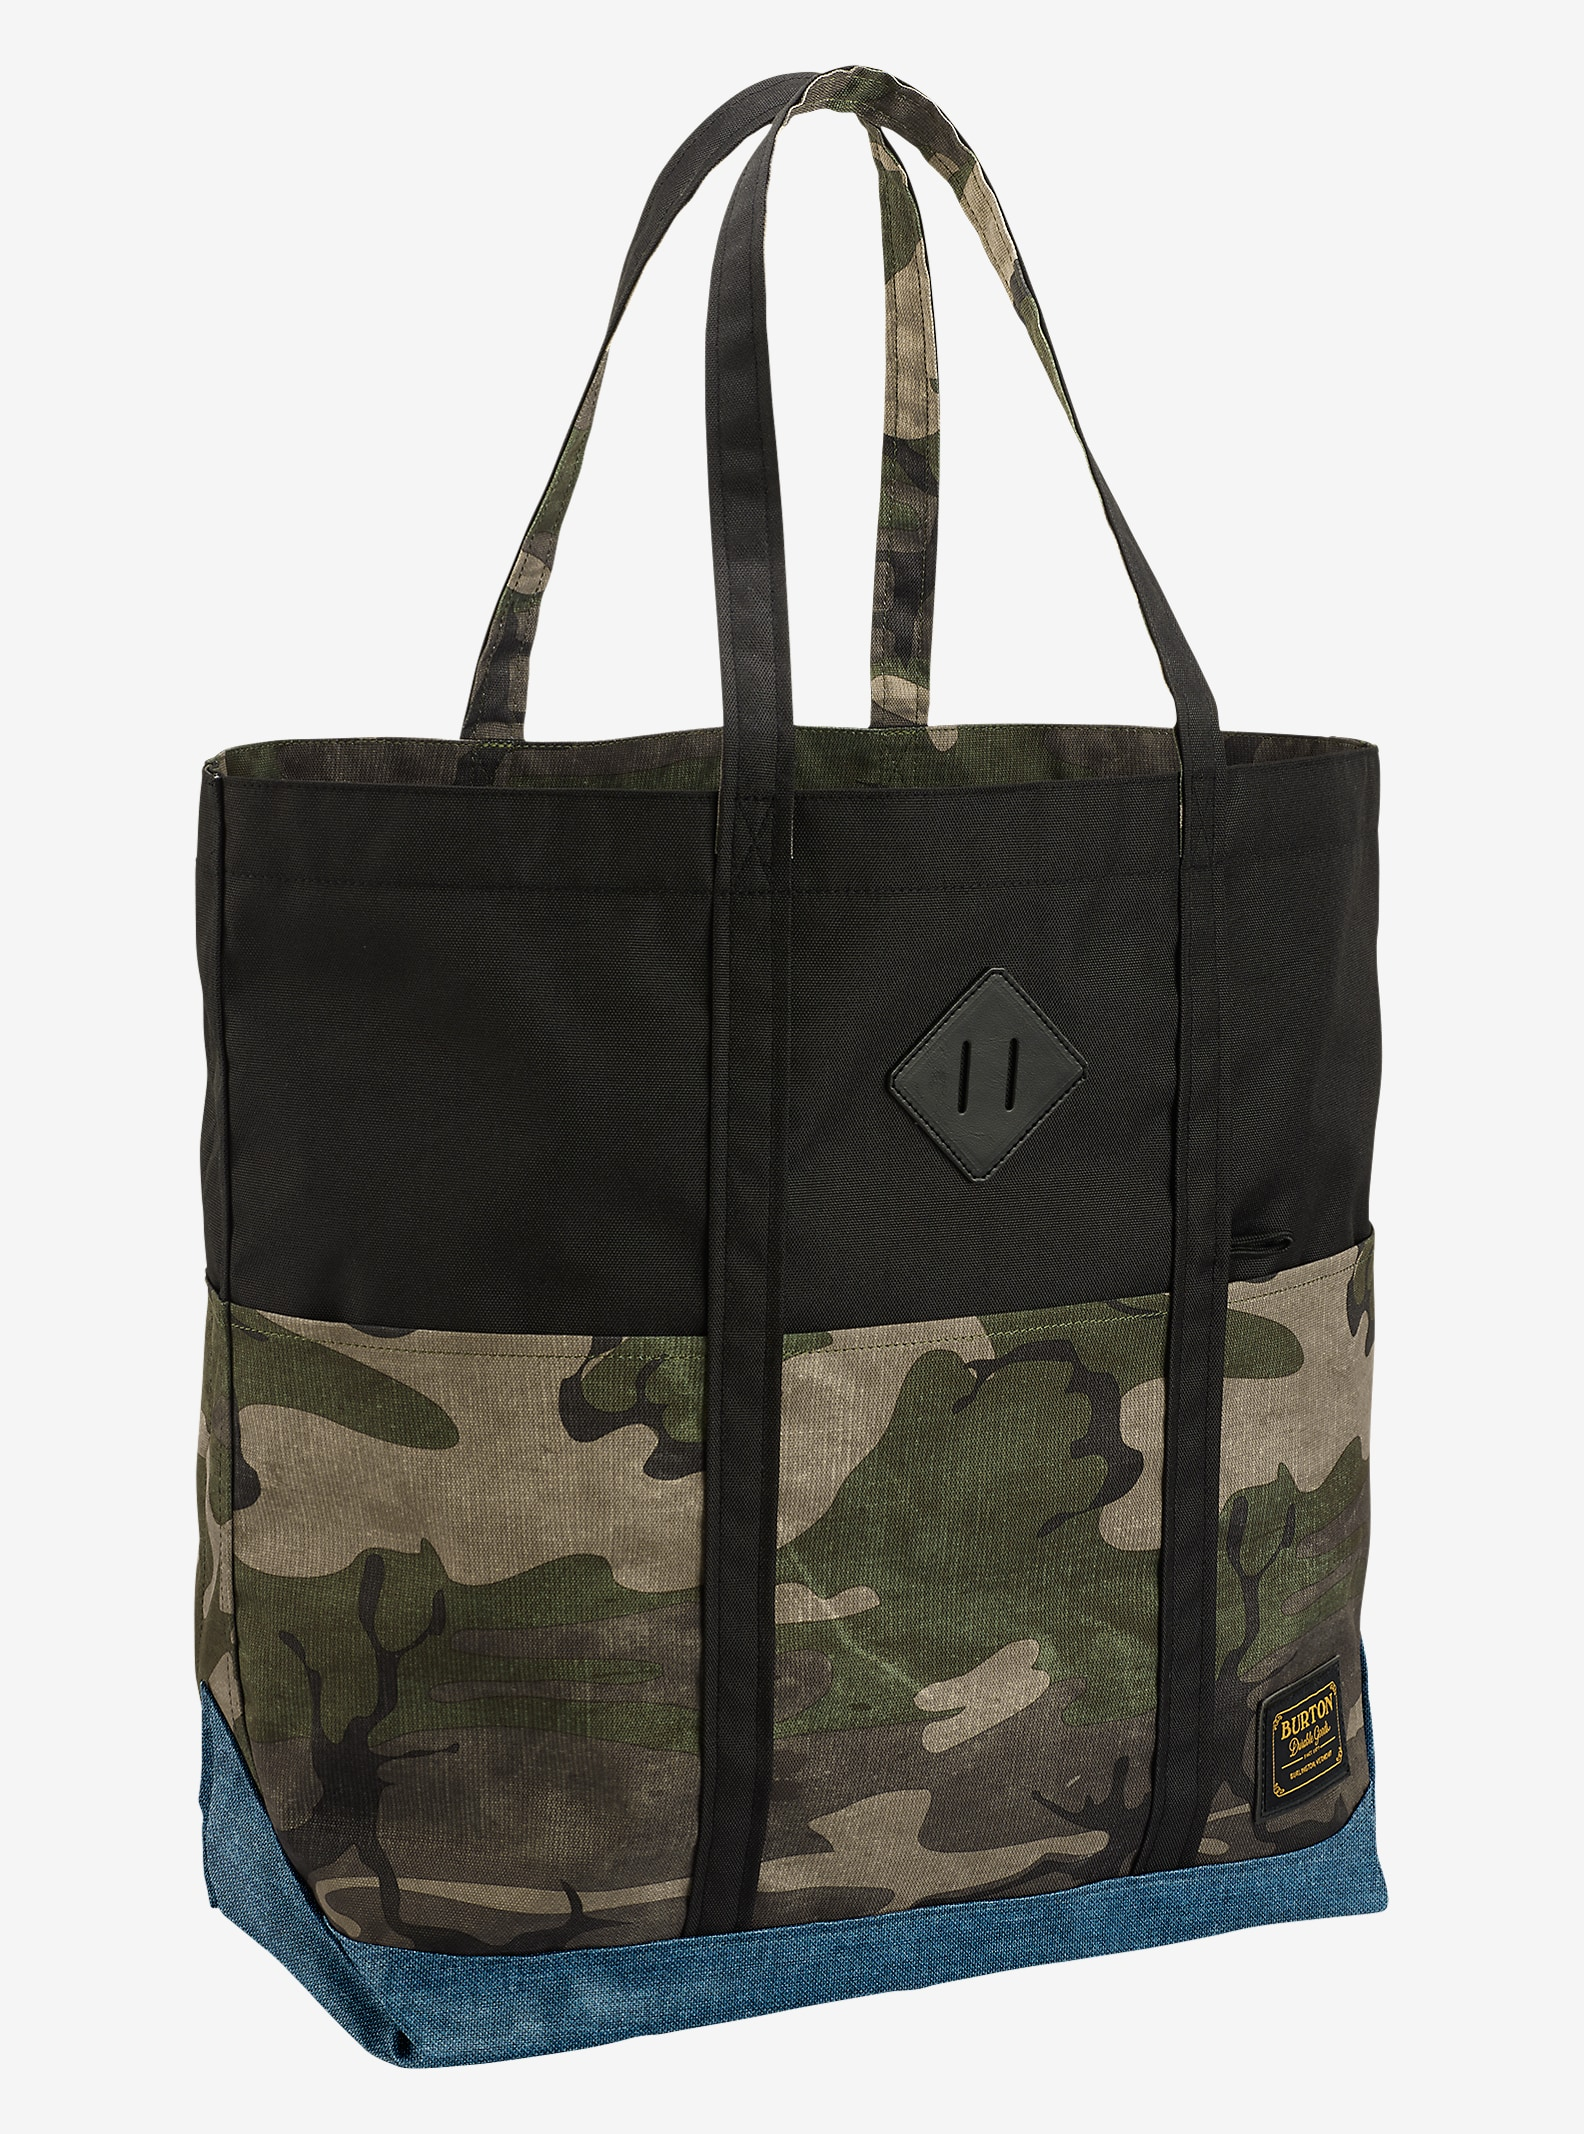 Burton Crate Tote - Large shown in Bkamo Print